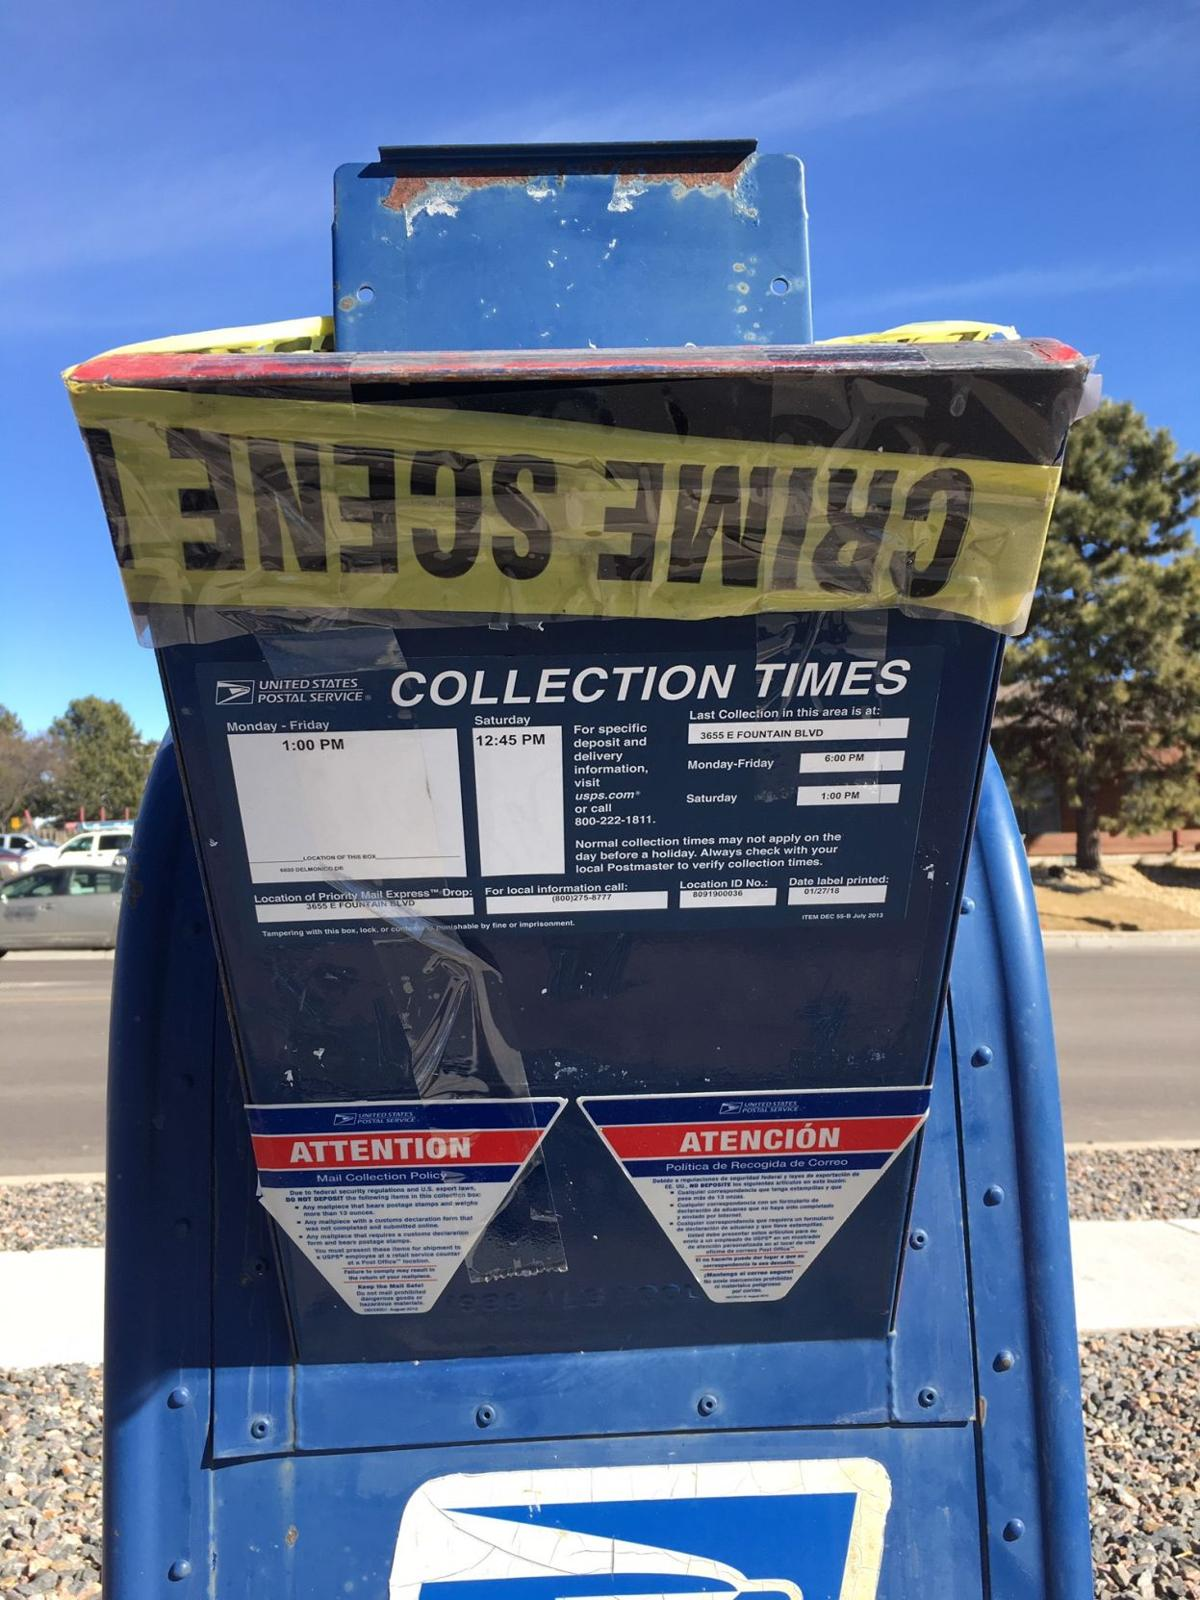 Crime Scene tape-covered cardboard fastened to two out-of-service mailboxes have Rockrimmon